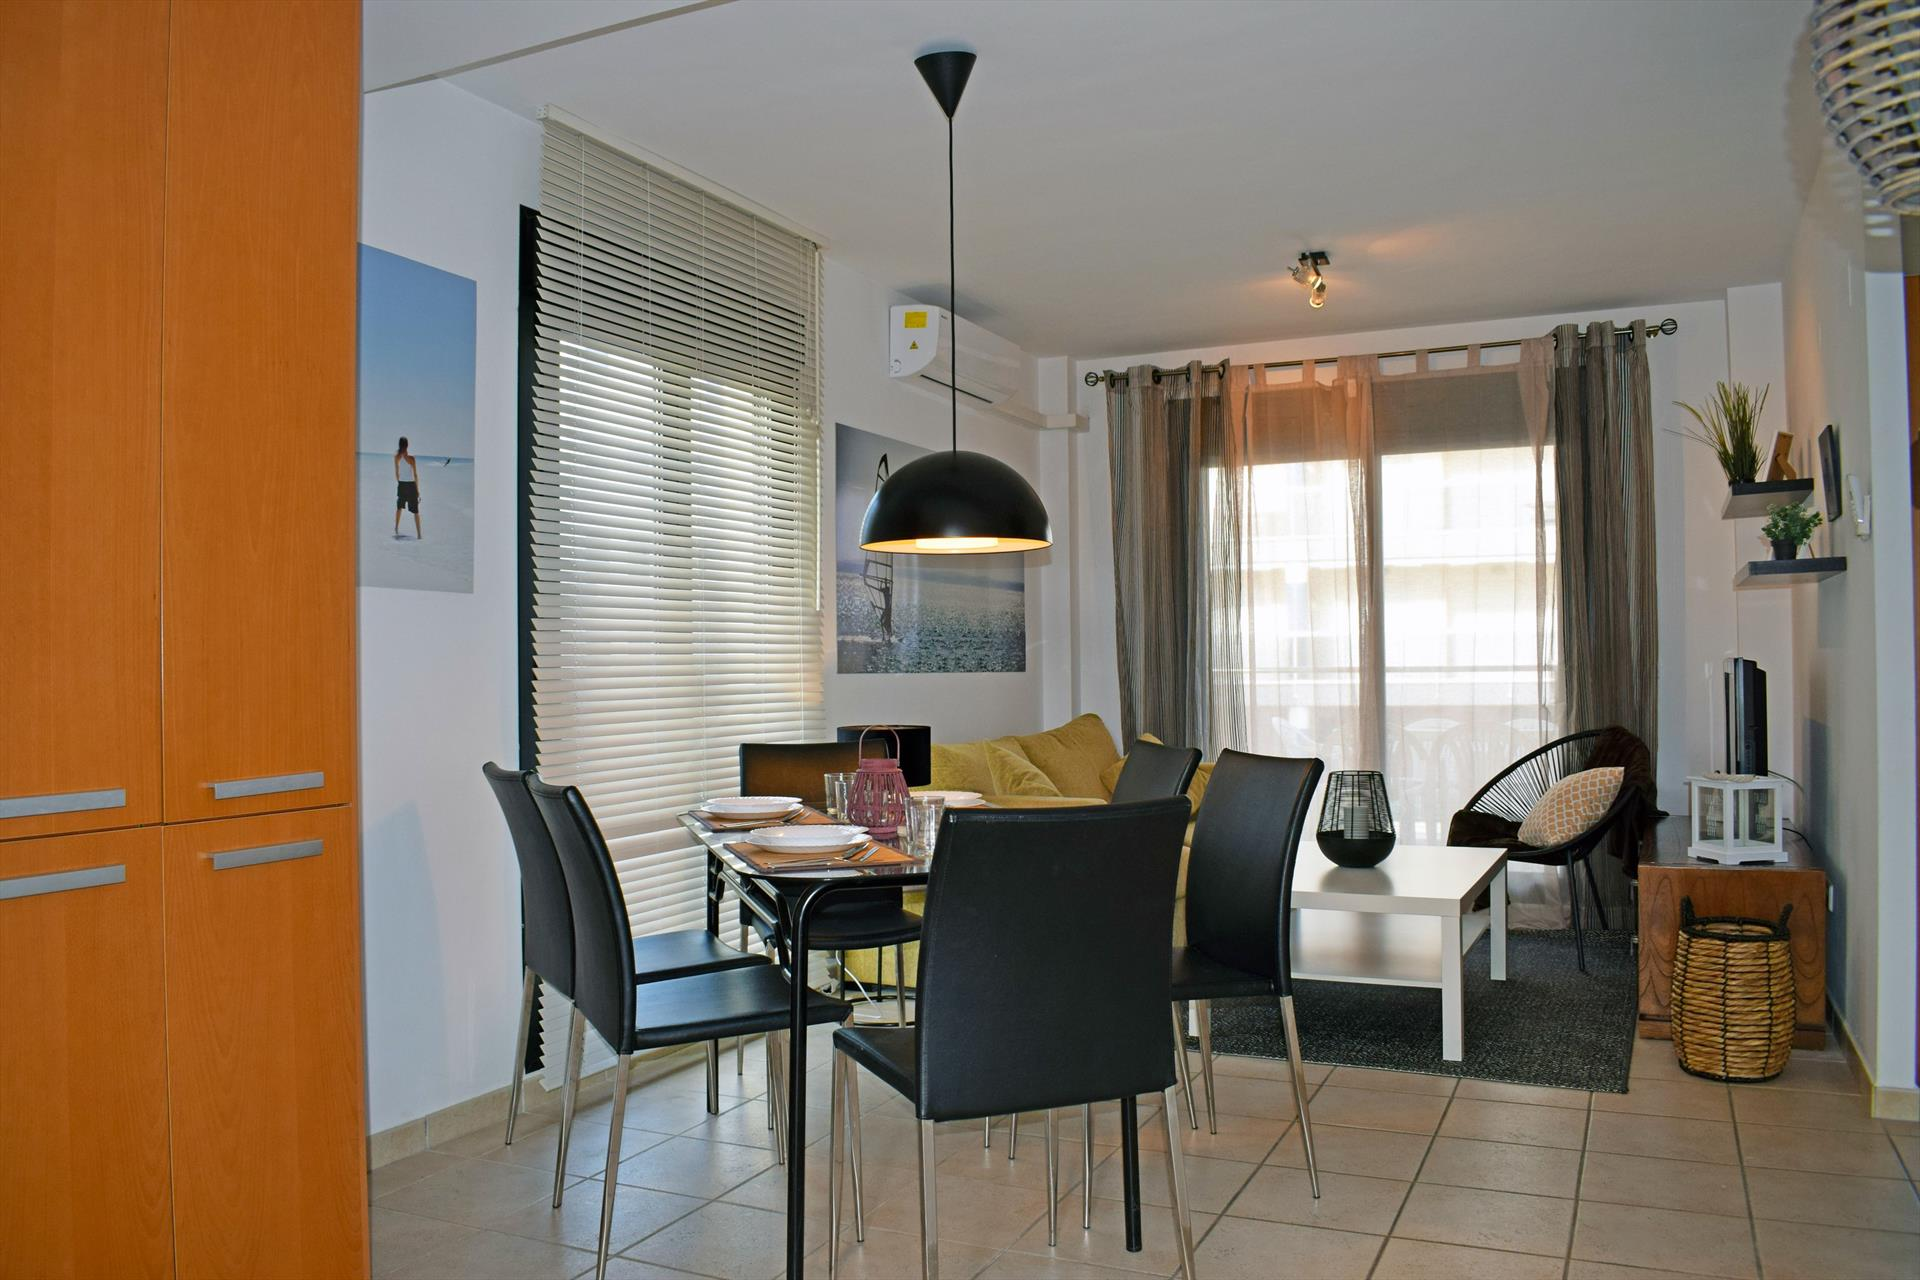 AP1 Migjorn Playa Bellreguard, Beautiful and cheerful apartment in Bellreguard, on the Costa Blanca, Spain  with communal pool for 6 persons.....